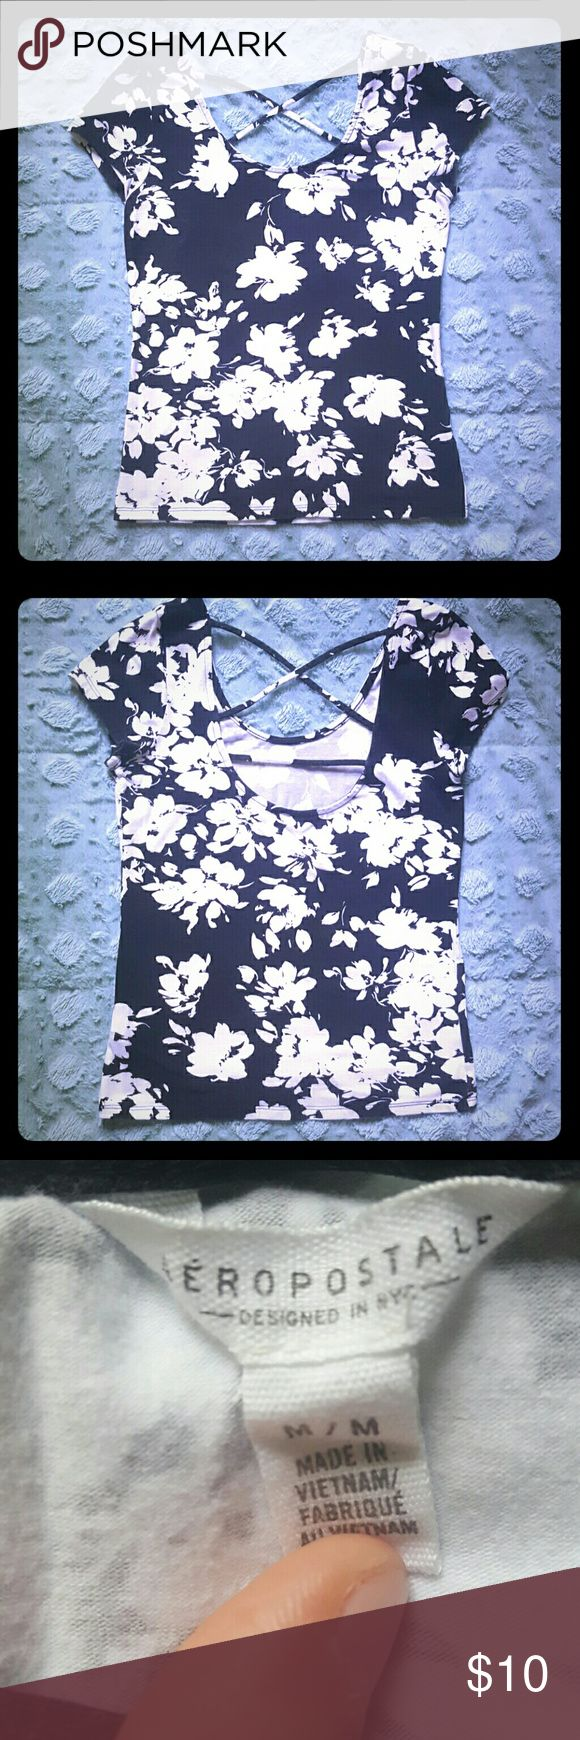 Aeropostale Strappyback Bodycon Top Aeropostale Strappyback Bodycon Top. It is a cute black and white floral pattern. This shows some wear in the color from washes but is still in good condition. It is a tight Bodycon fit and is short but not quite a crop top. Make an Offer! Aeropostale Tops Crop Tops